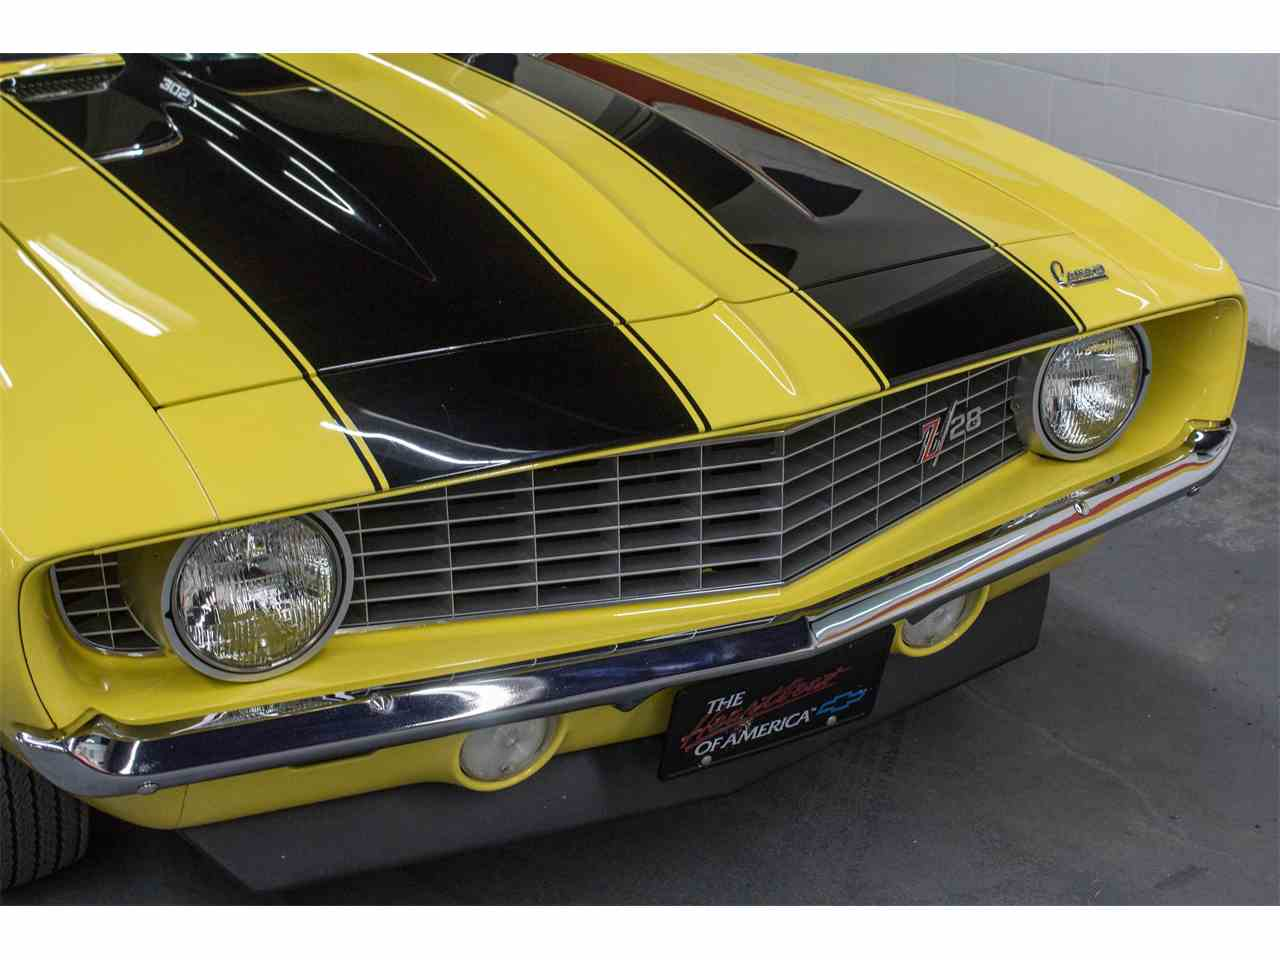 Large Picture of 1969 Camaro Z28 located in Montreal Quebec - $79,000.00 Offered by John Scotti Classic Cars - M8KS